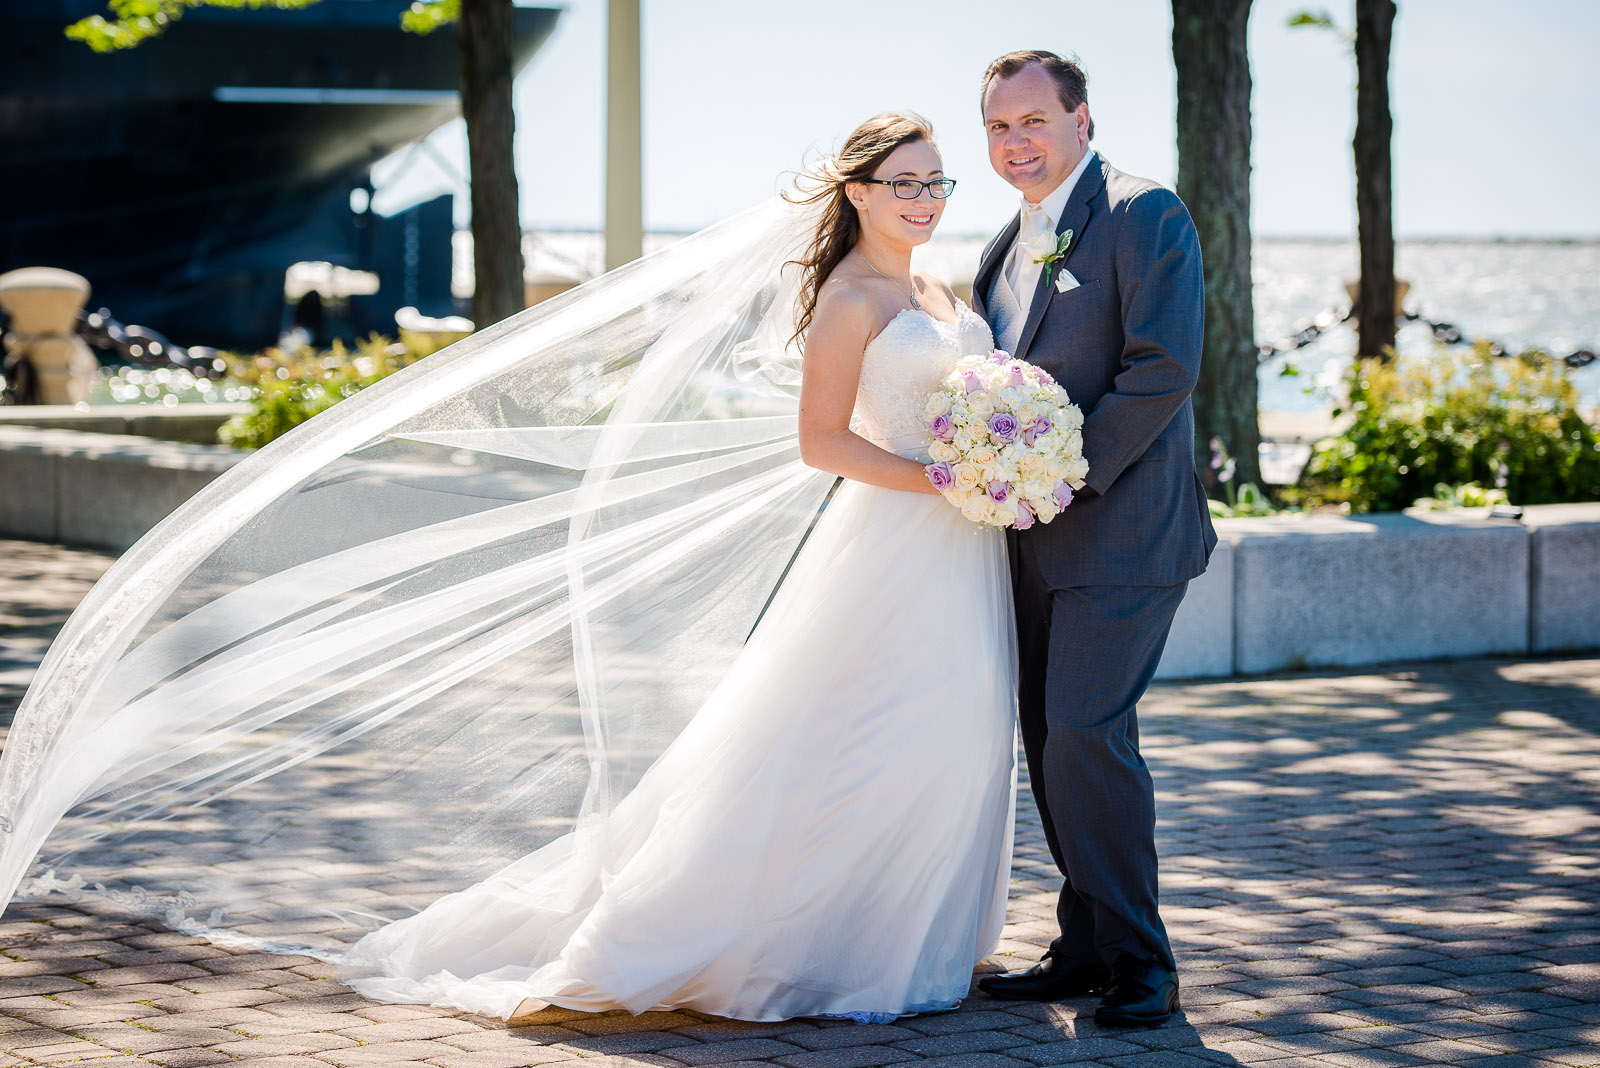 Eric_and_Christy_Photography_Blog_Julie_Adam_Wedding-23